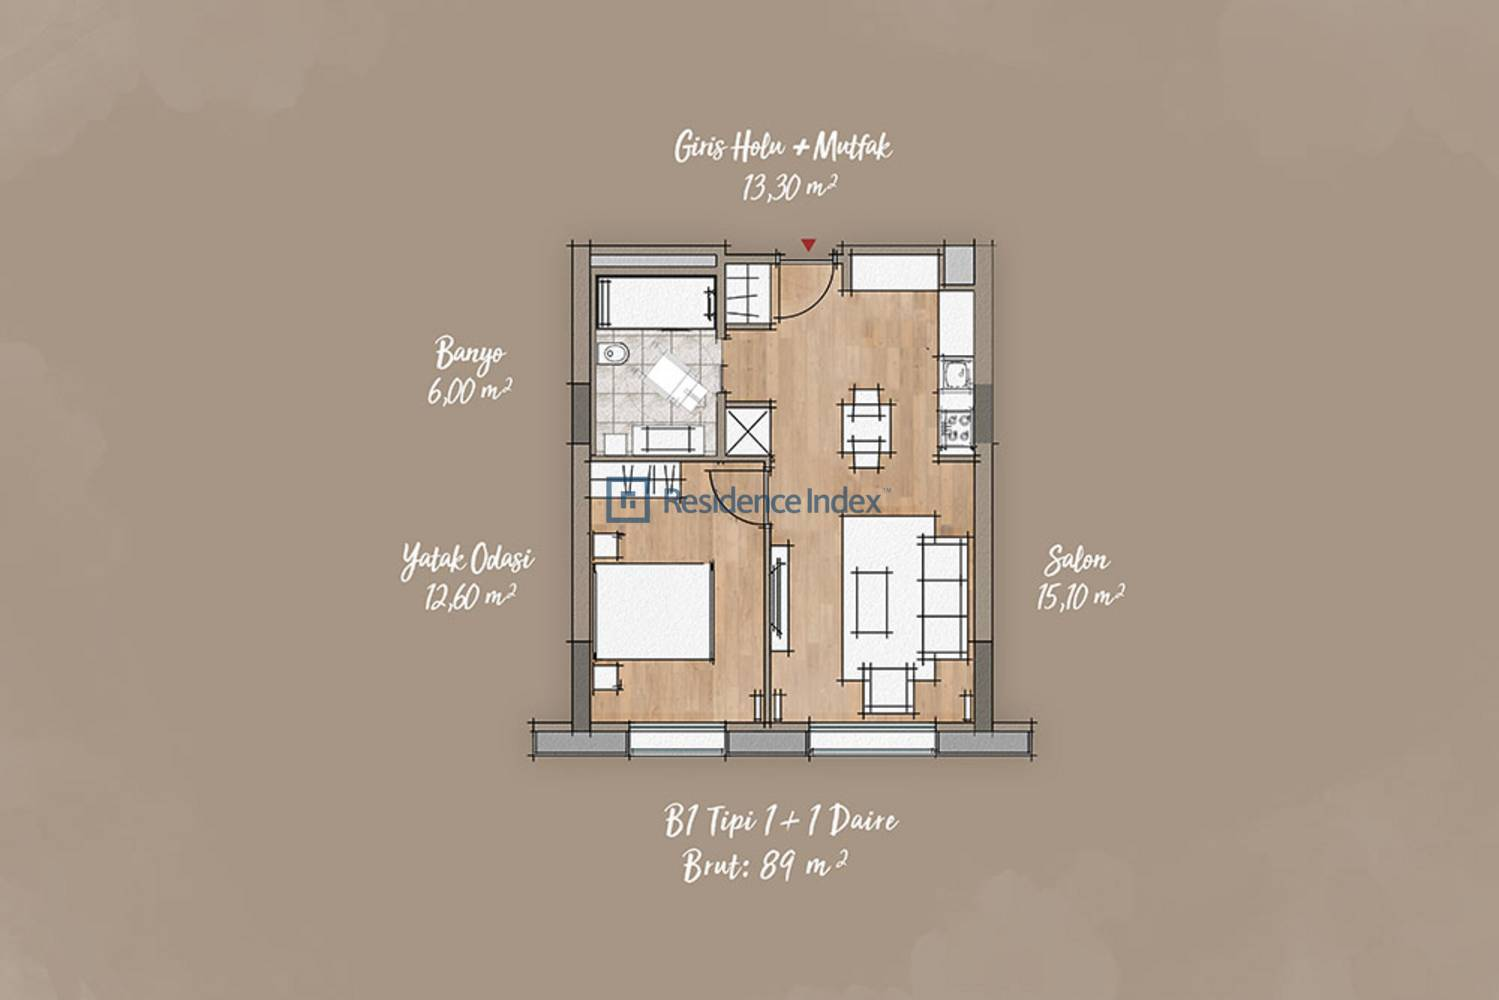 Antwell Life Care Residence  B1 Tipi